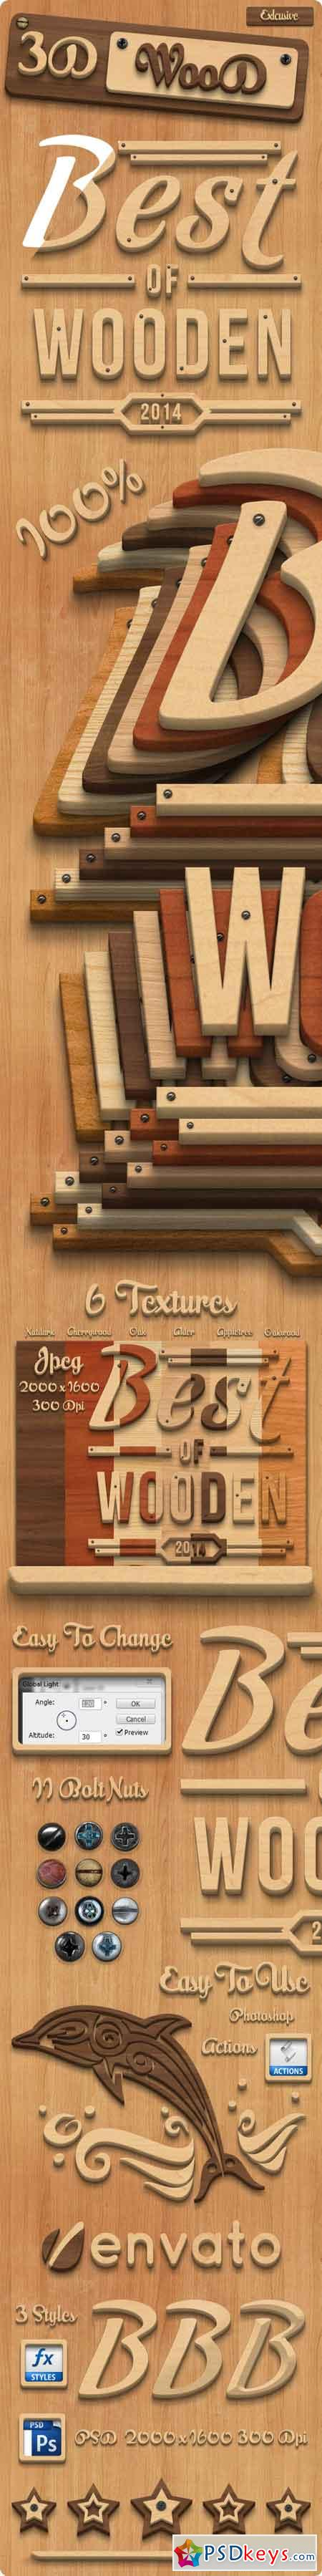 3D Wood Creation Photoshop Actions 8012911